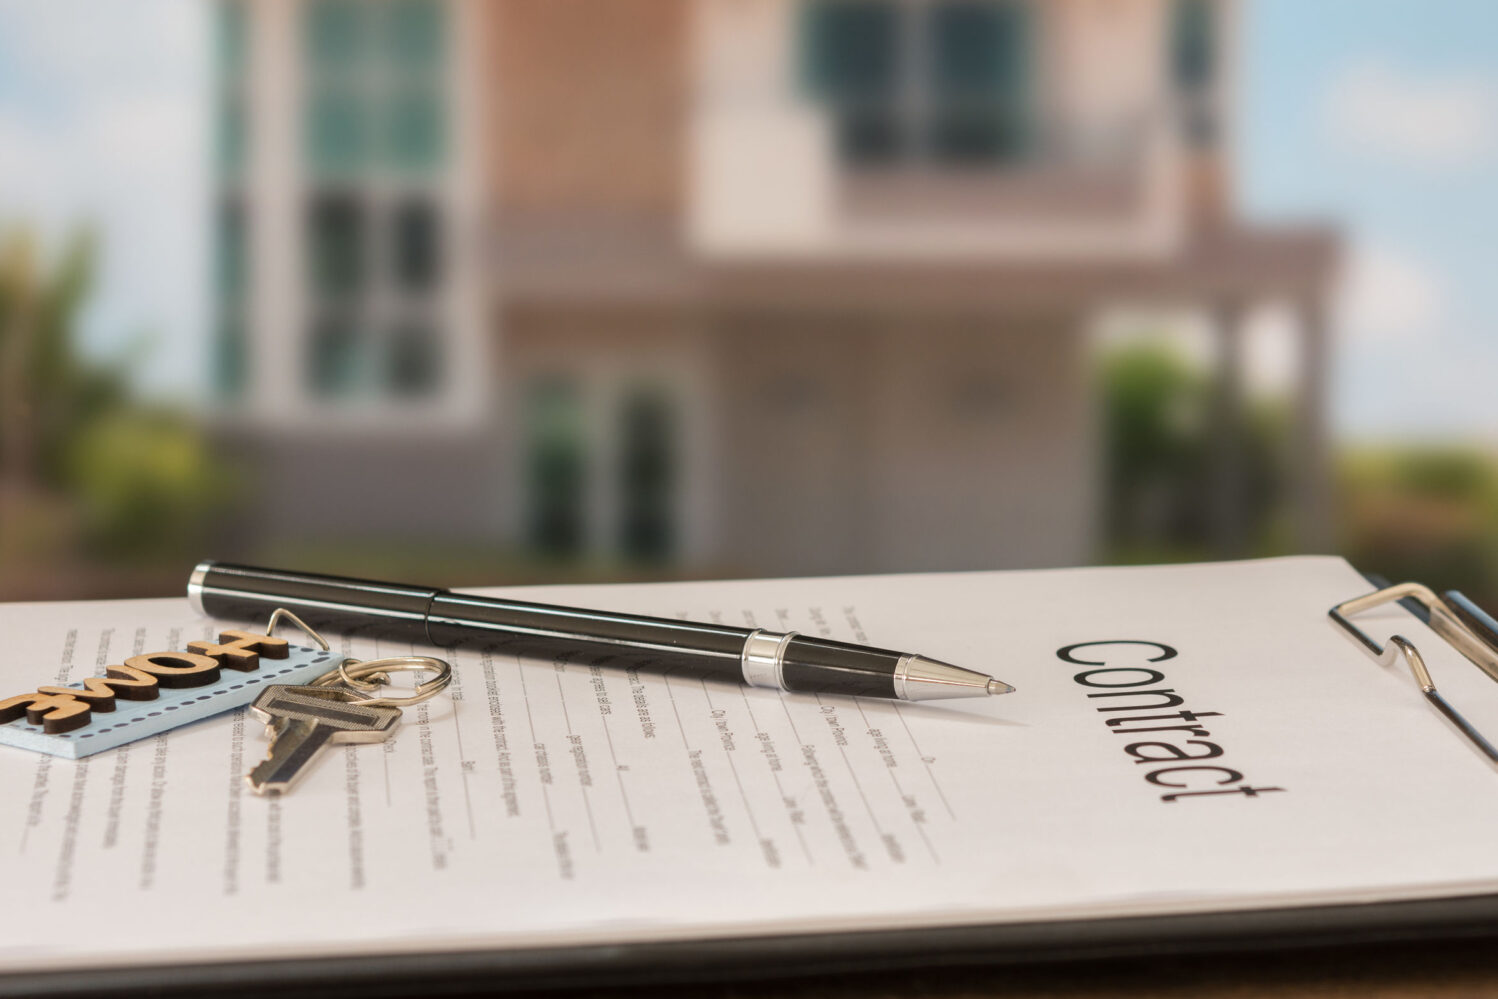 Image description: Closeup pen on contract document with house in background.